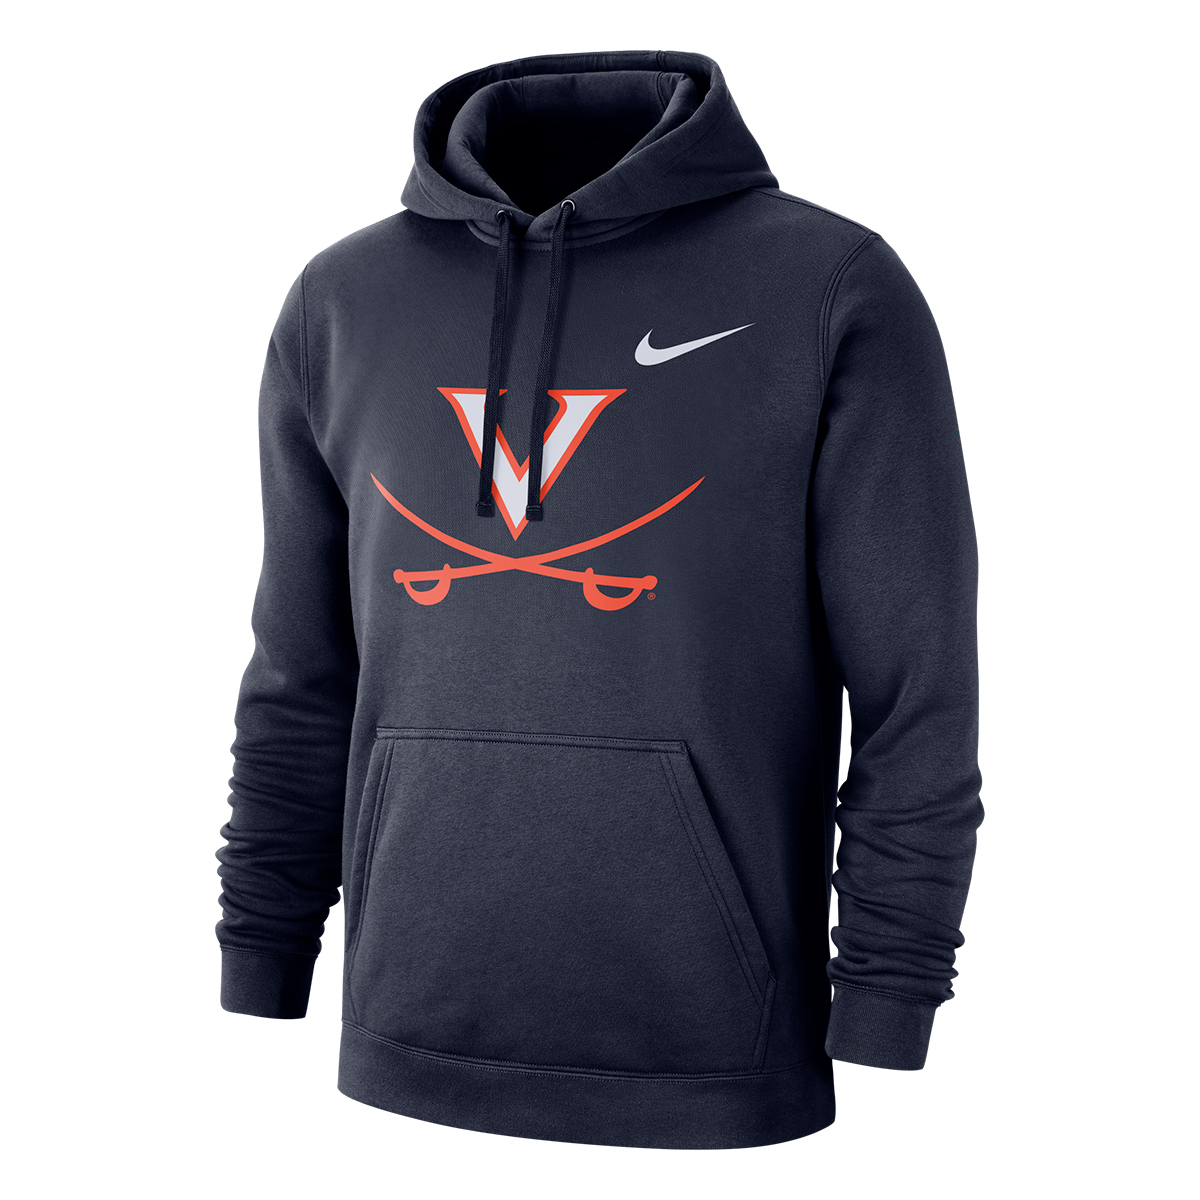 University of Virginia Nike V-Saber Navy Fleece Hoodie